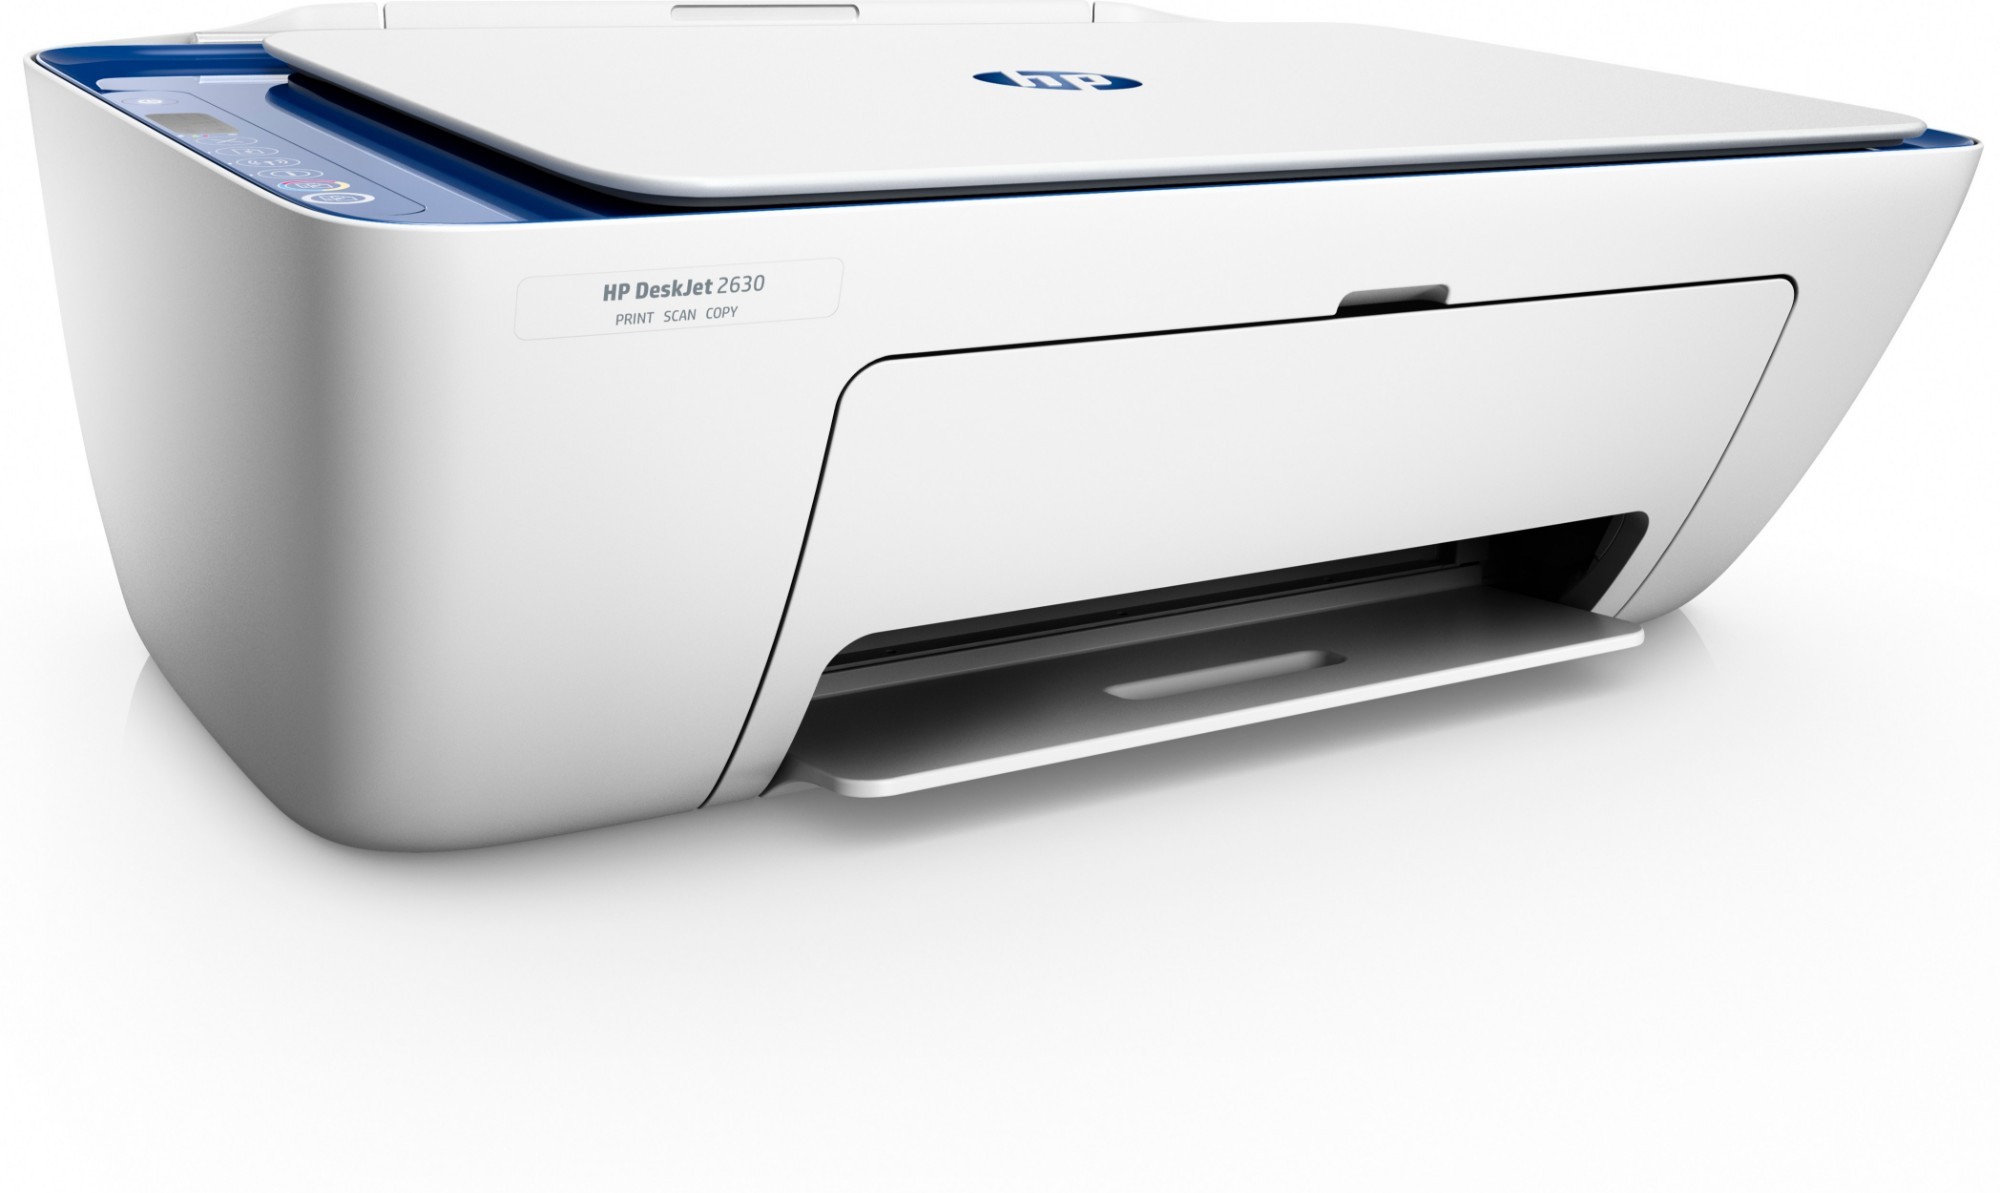 ... HP DeskJet 2630 4800 x 1200DPI Thermal Inkjet A4 7.5ppm Wi-Fi ...